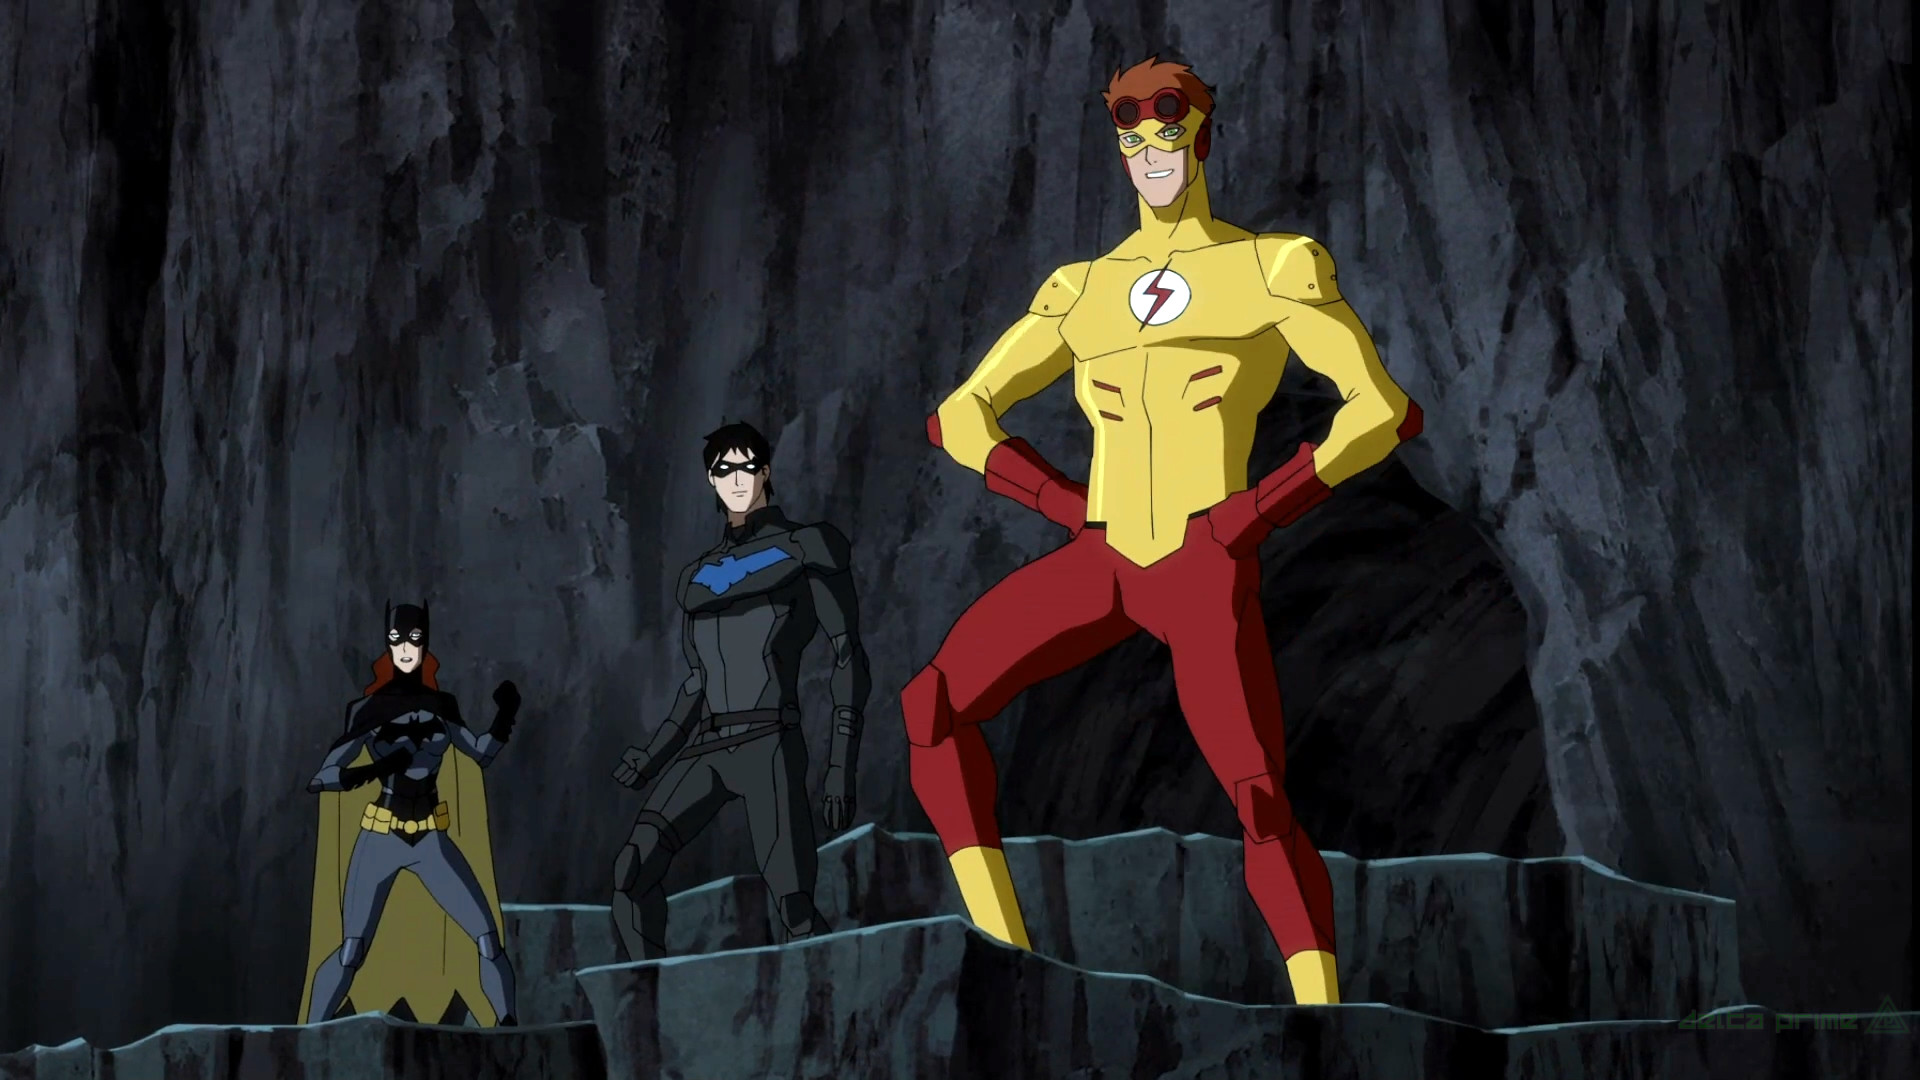 1920x1080 General  Young Justice Kid Flash Wally West Nightwing Oracle Dick  Grayson